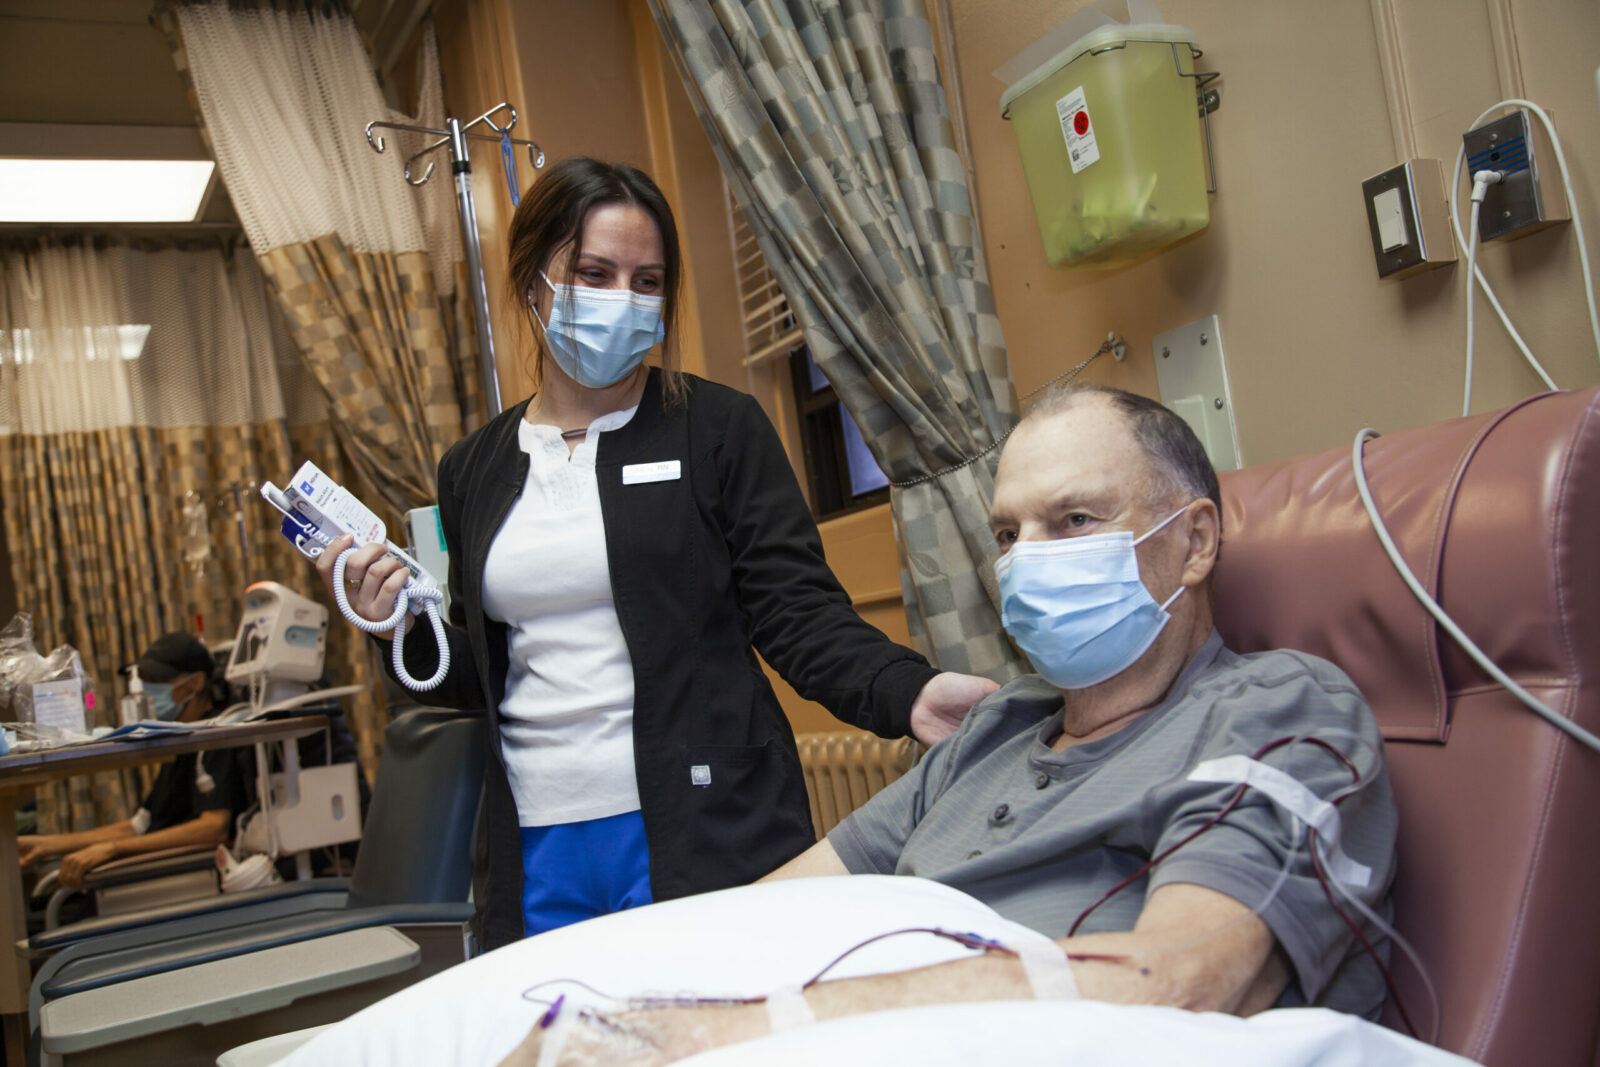 Nurse comforts patient undergoing chemotherapy at the QEII's Medical Day Unit